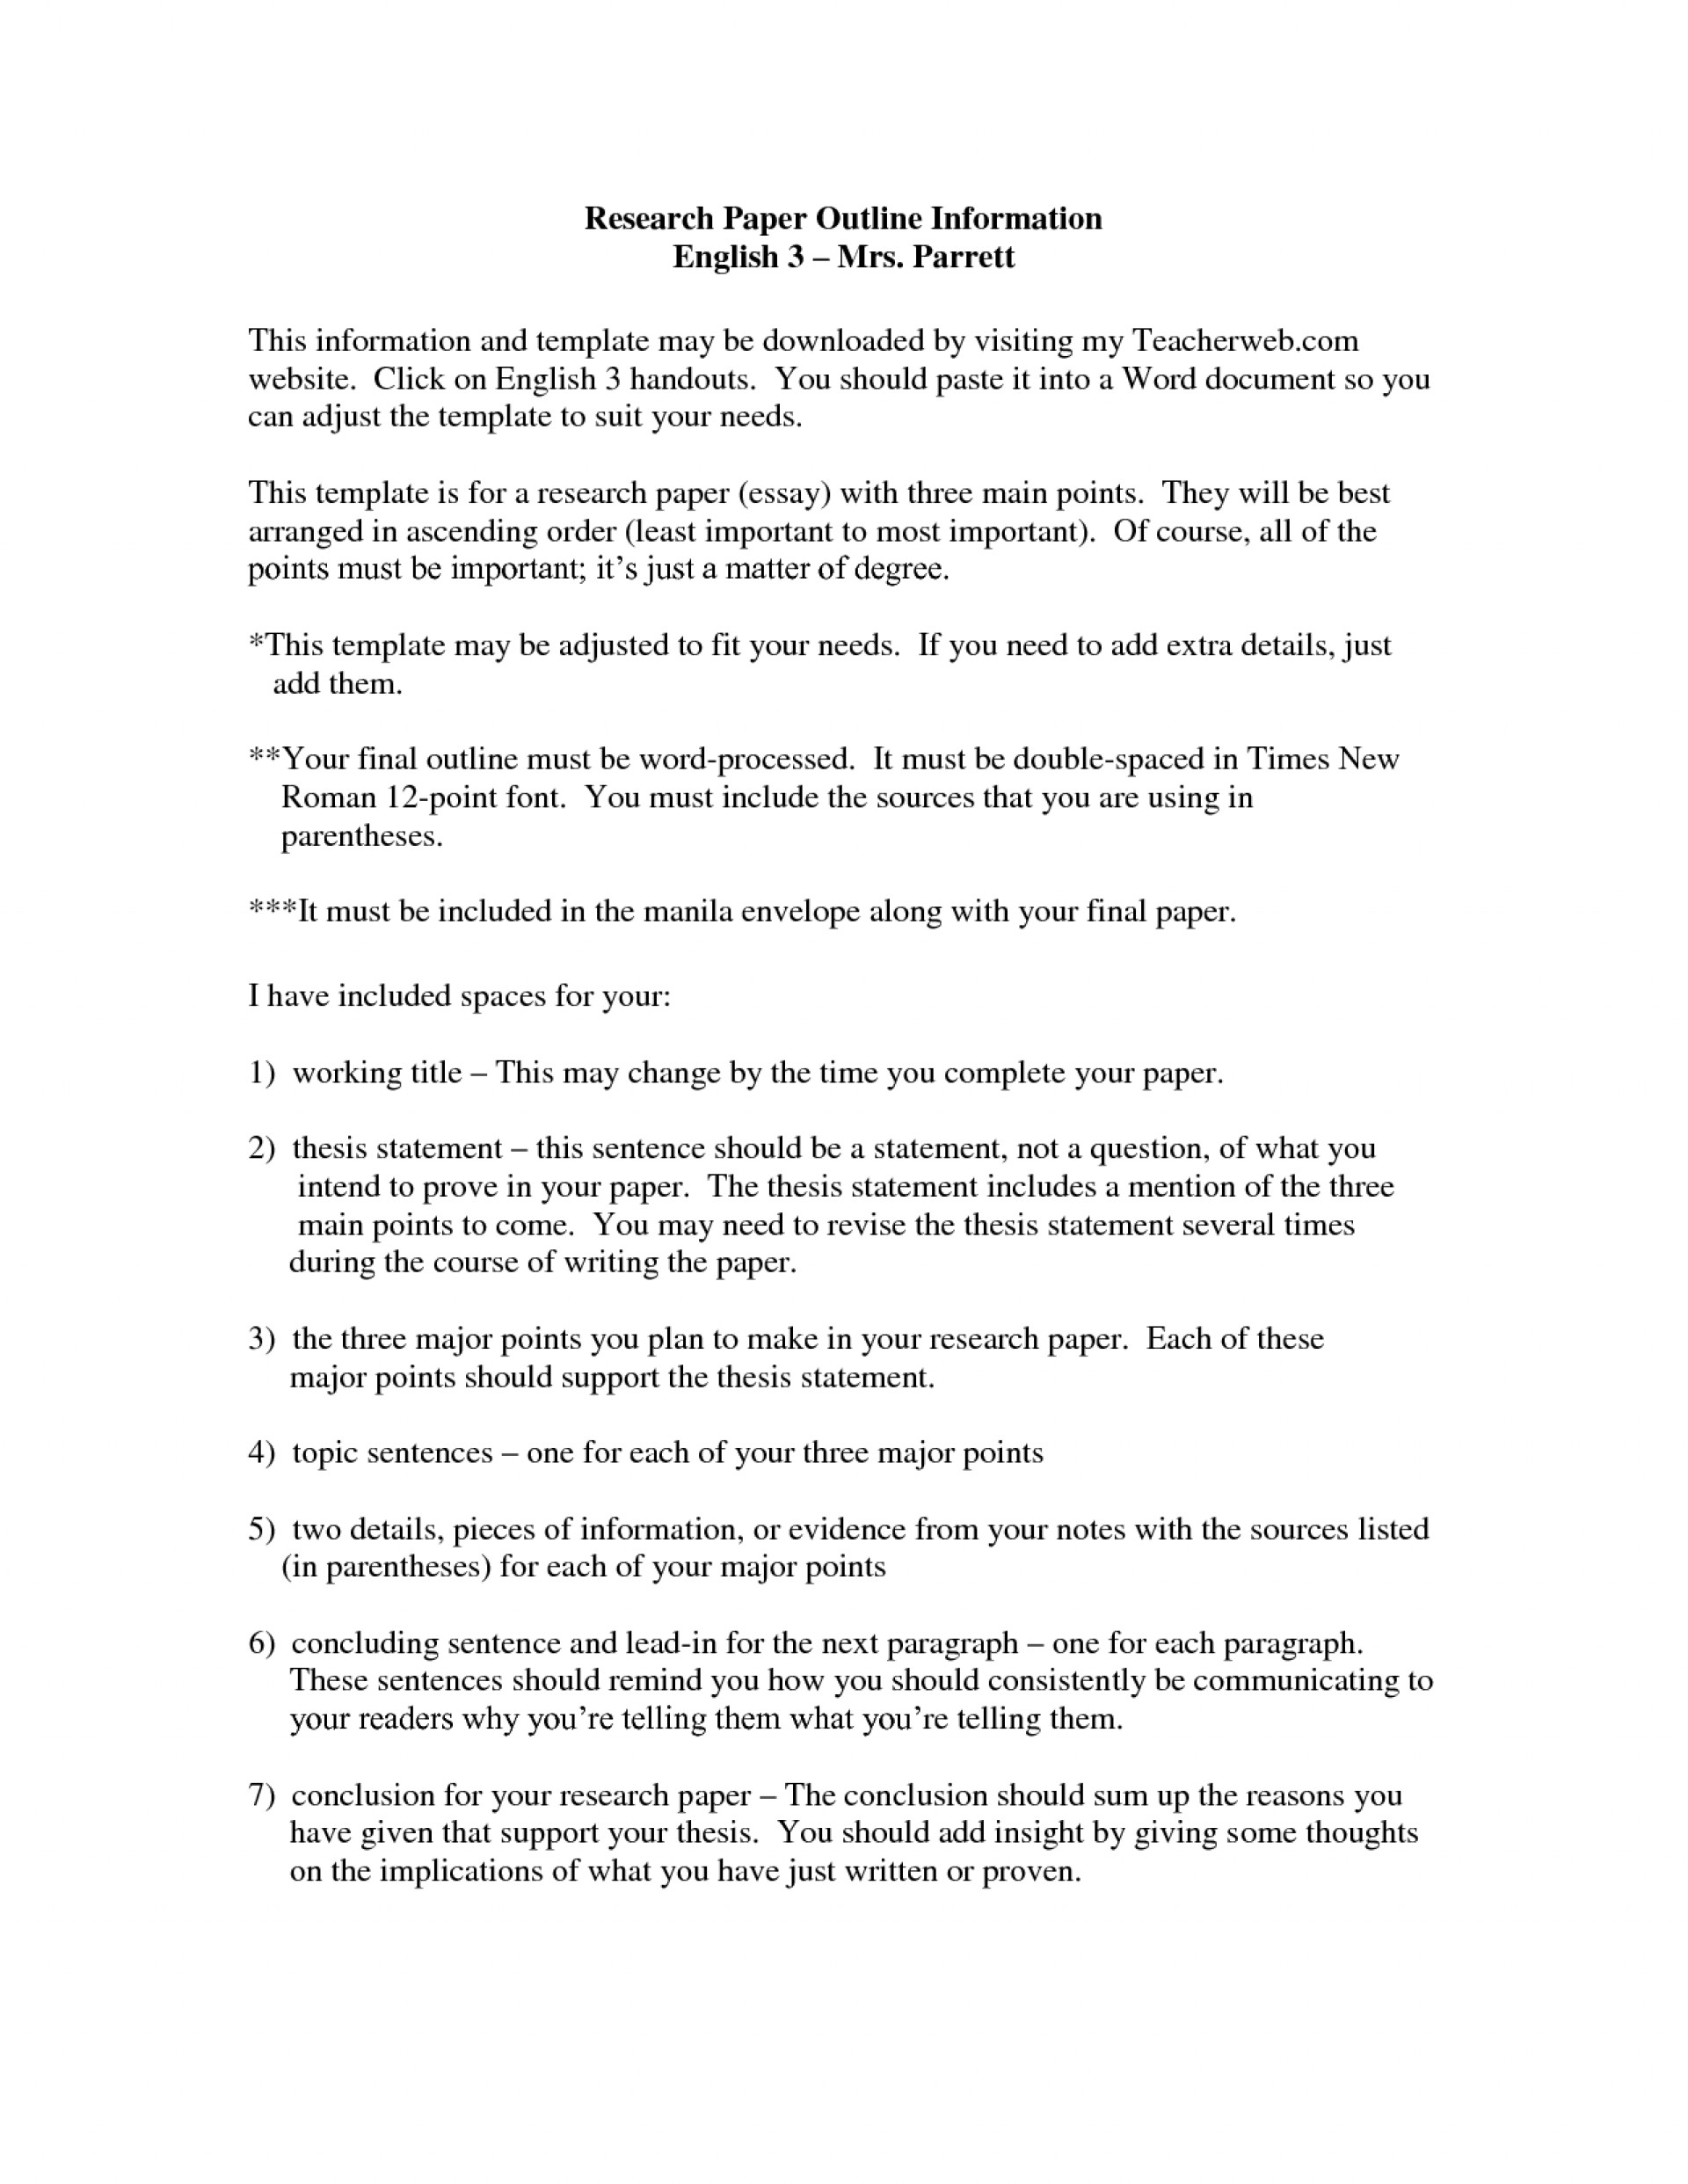 005 Research Papers Of Thesis Statements For Template Cginsgsx Career Outline Astounding Paper Example 1920